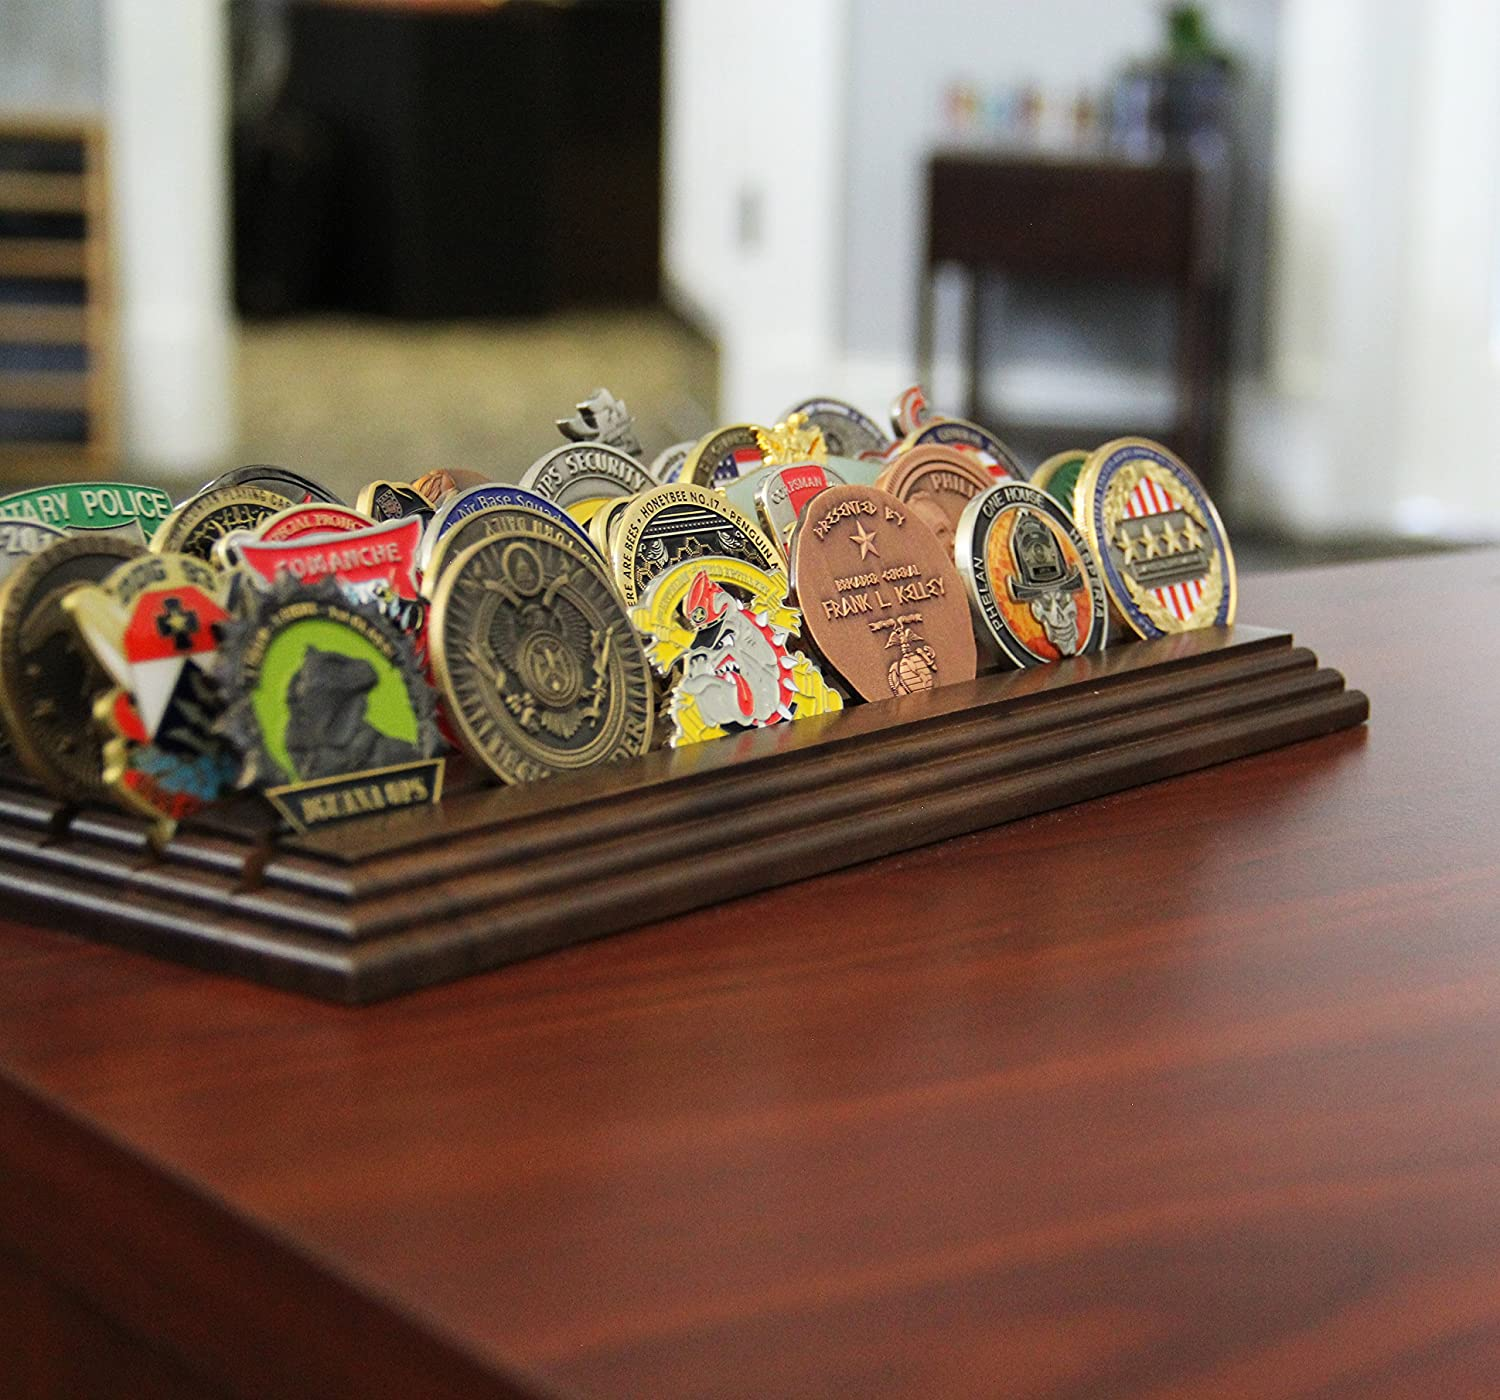 Coins For Anything Inc Amazing Military Challenge Coin Holder Holds 30-36 Coins 5 Rows Made in The USA! Military Coin Display Stand Solid Walnut 5 Row Challenge Coin Holder